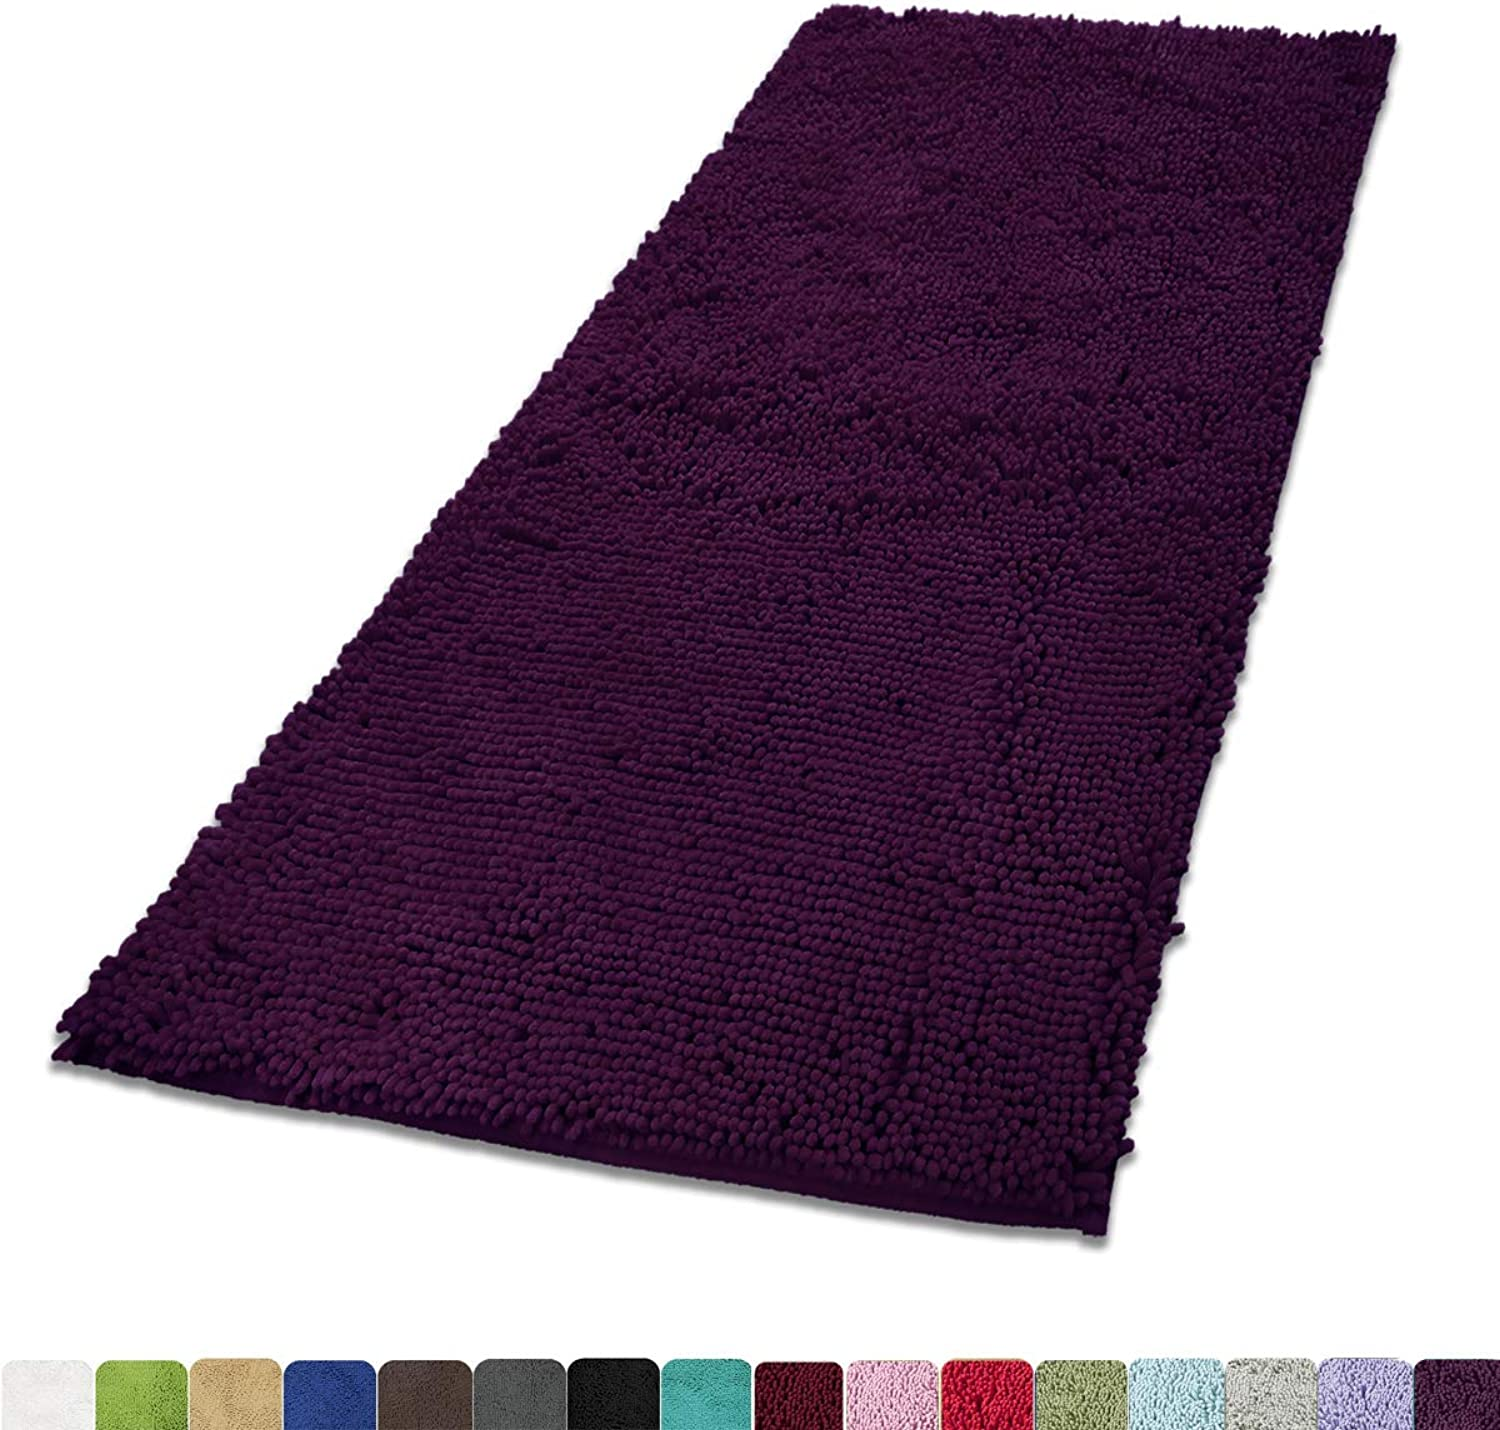 MAYSHINE Absorbent Microfiber Chenille Door mat Runner for Front Inside Floor Doormats, Quick Drying, Washable-31x59 inch Plum